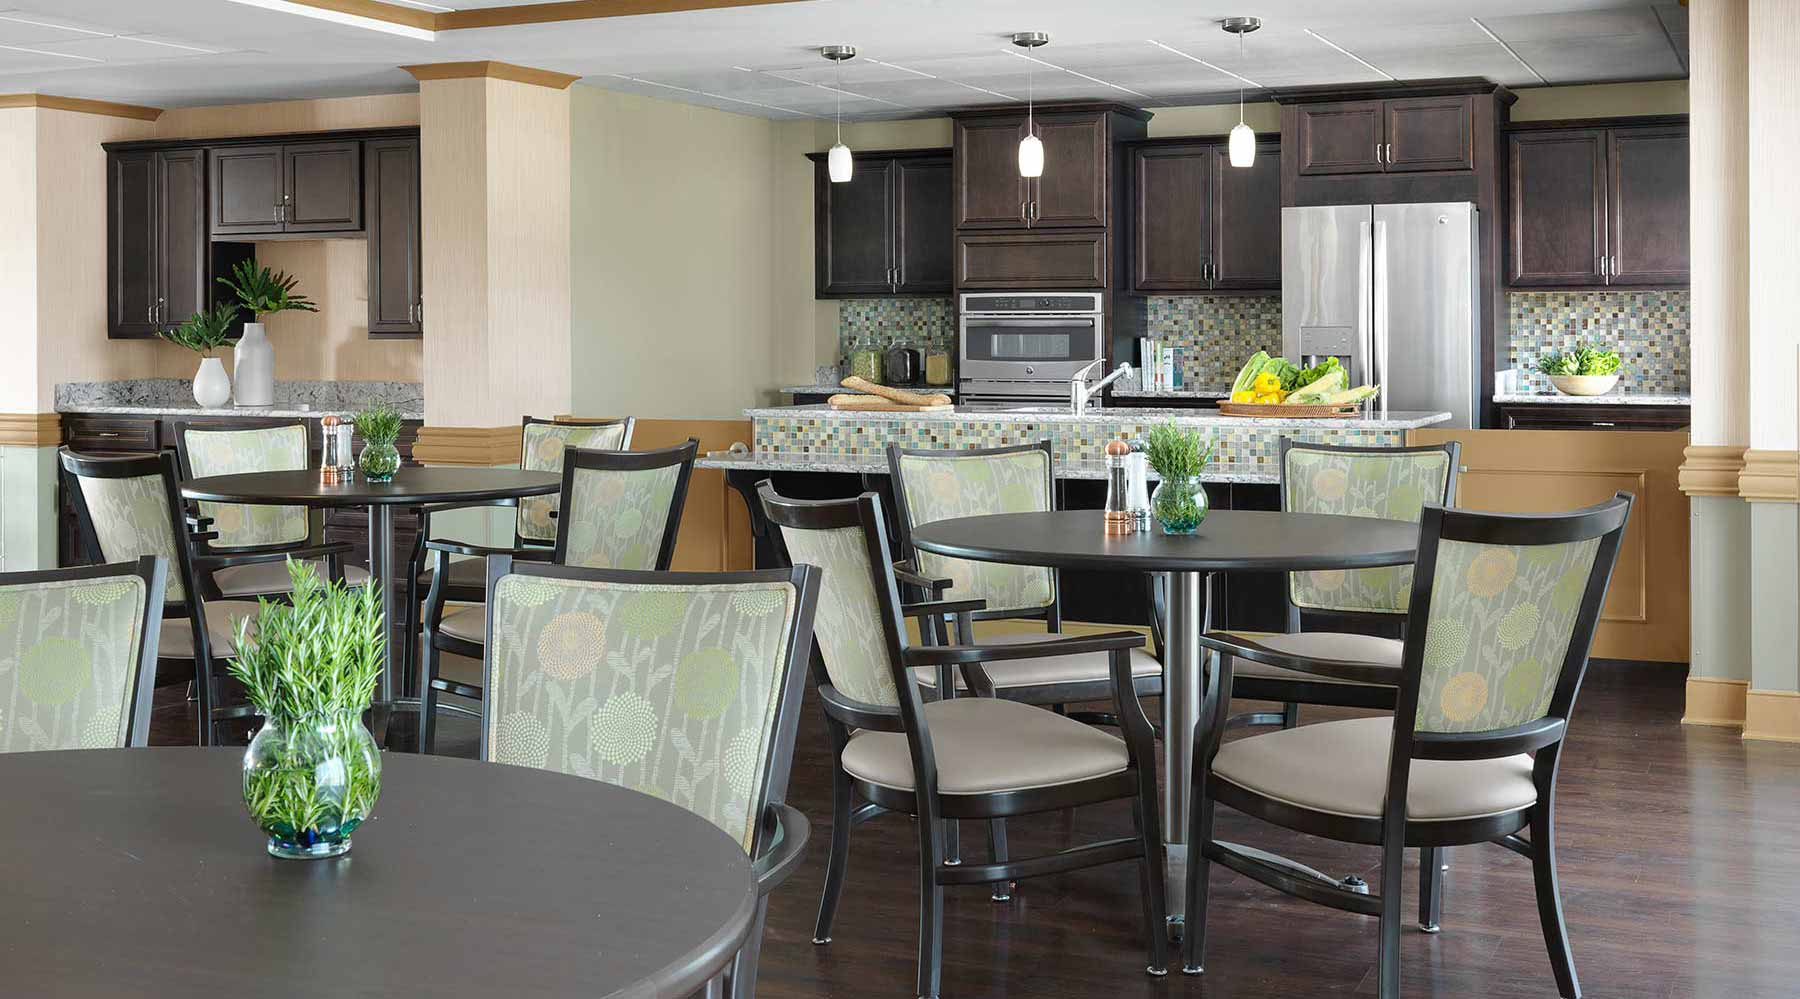 The memory care kitchen at Kingswood Senior Living Located in Kansas City, MO.